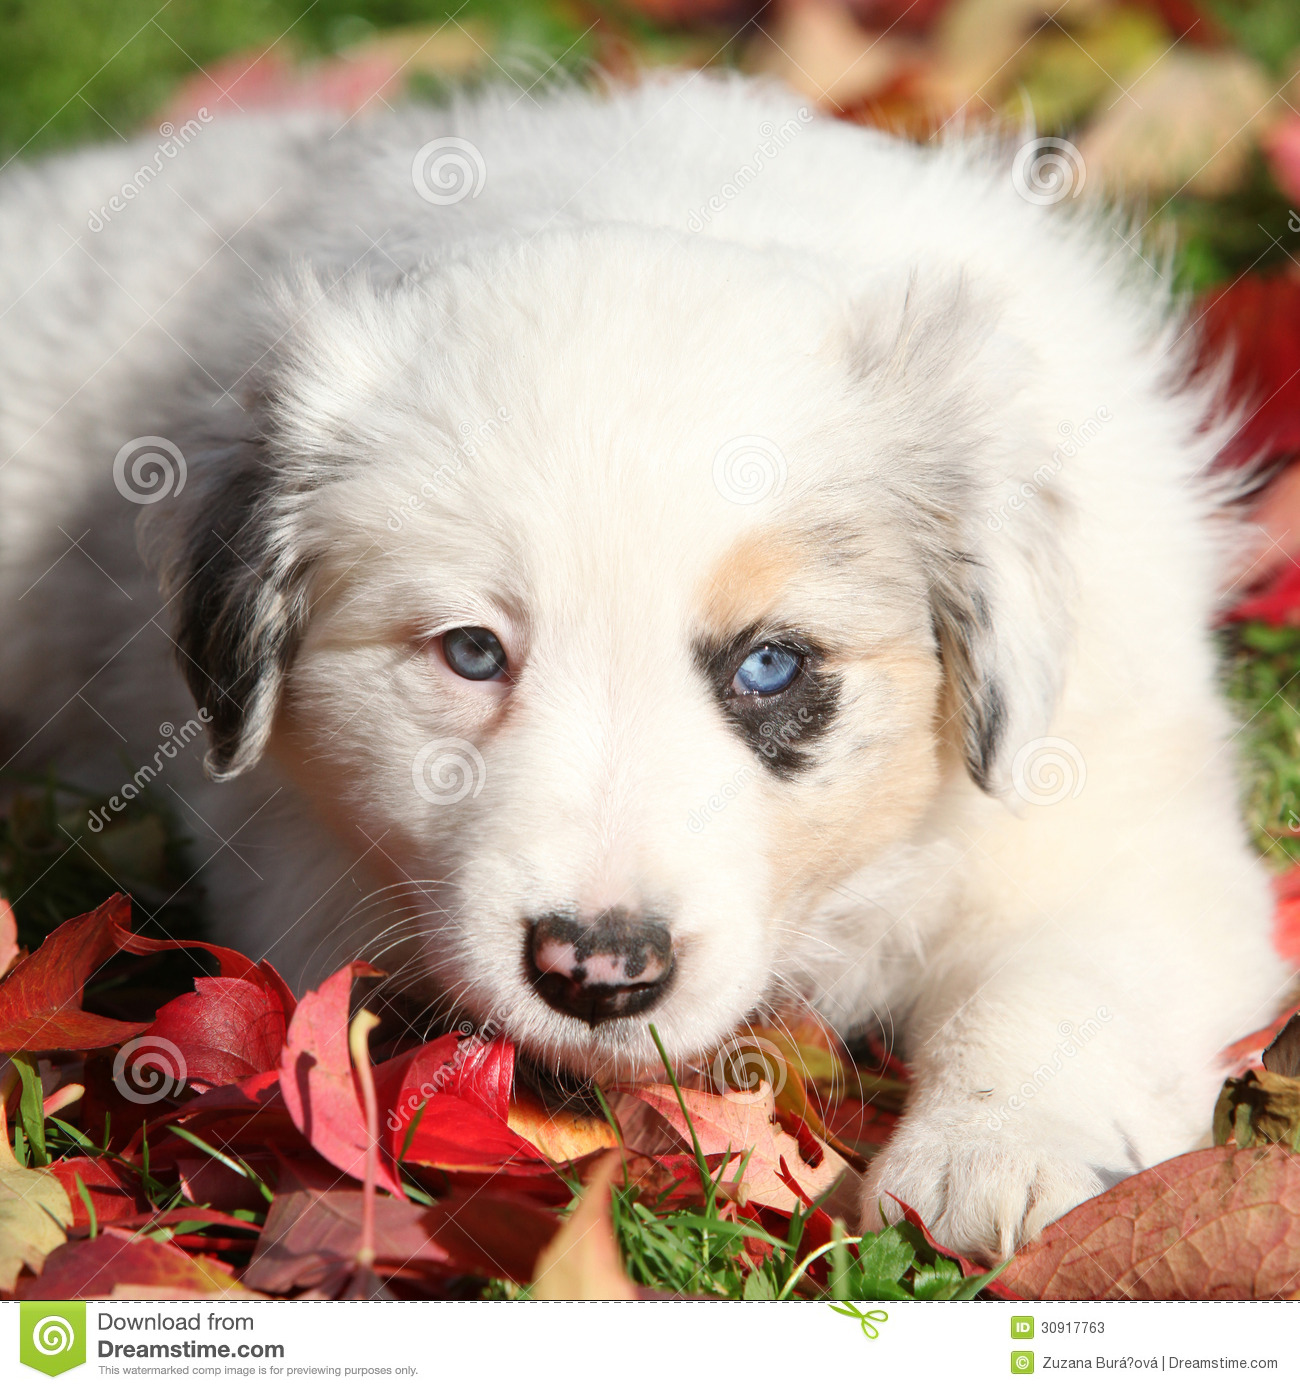 Adorable Border Collie Puppy Lying In Red Leaves Stock Photo